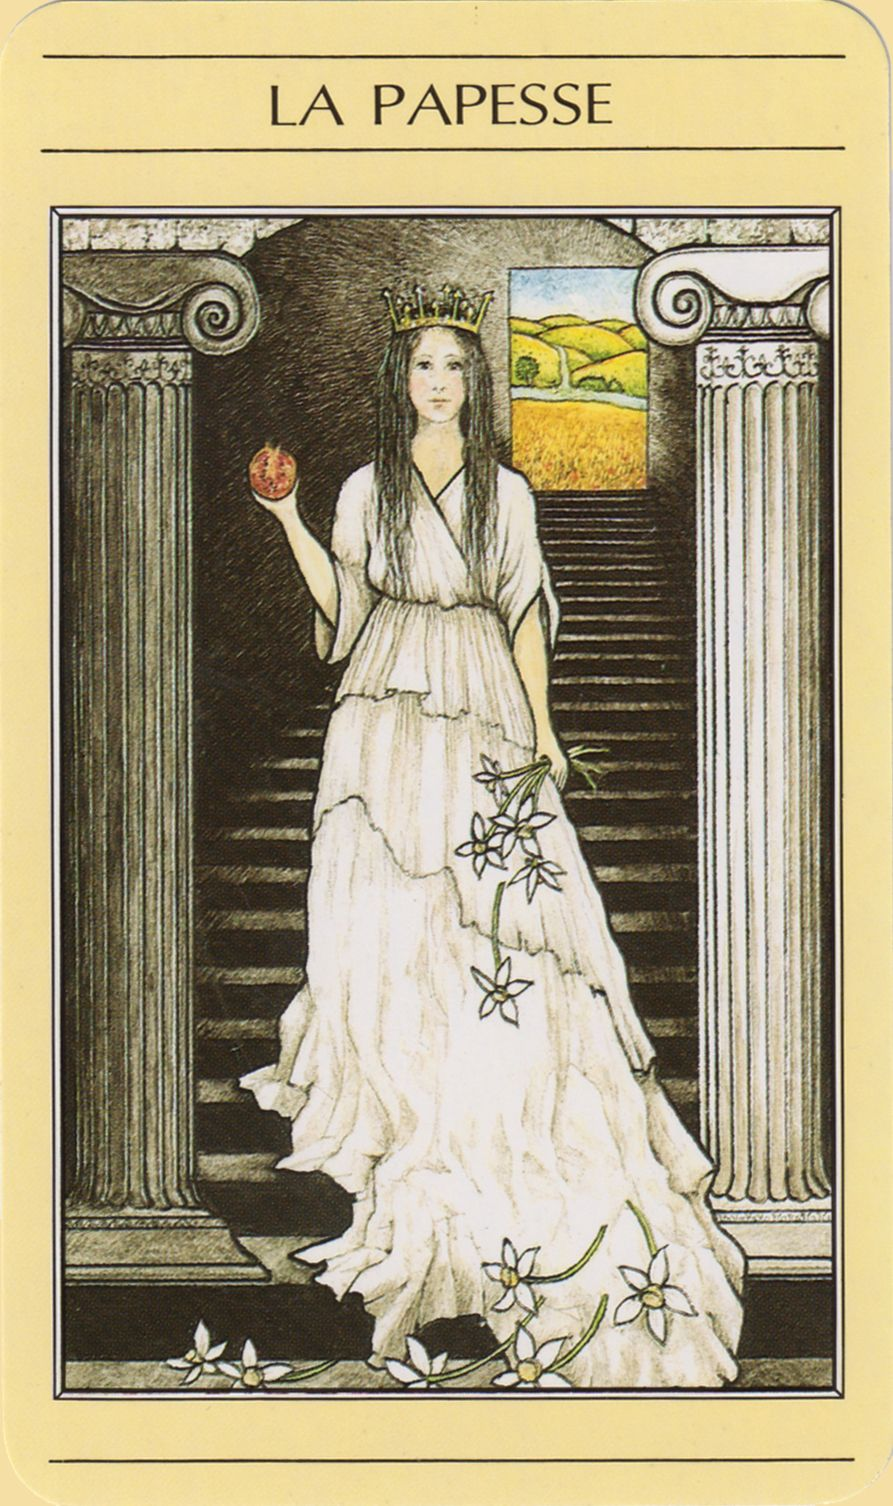 The incredible popularity of priestesses of love in the Victorian era